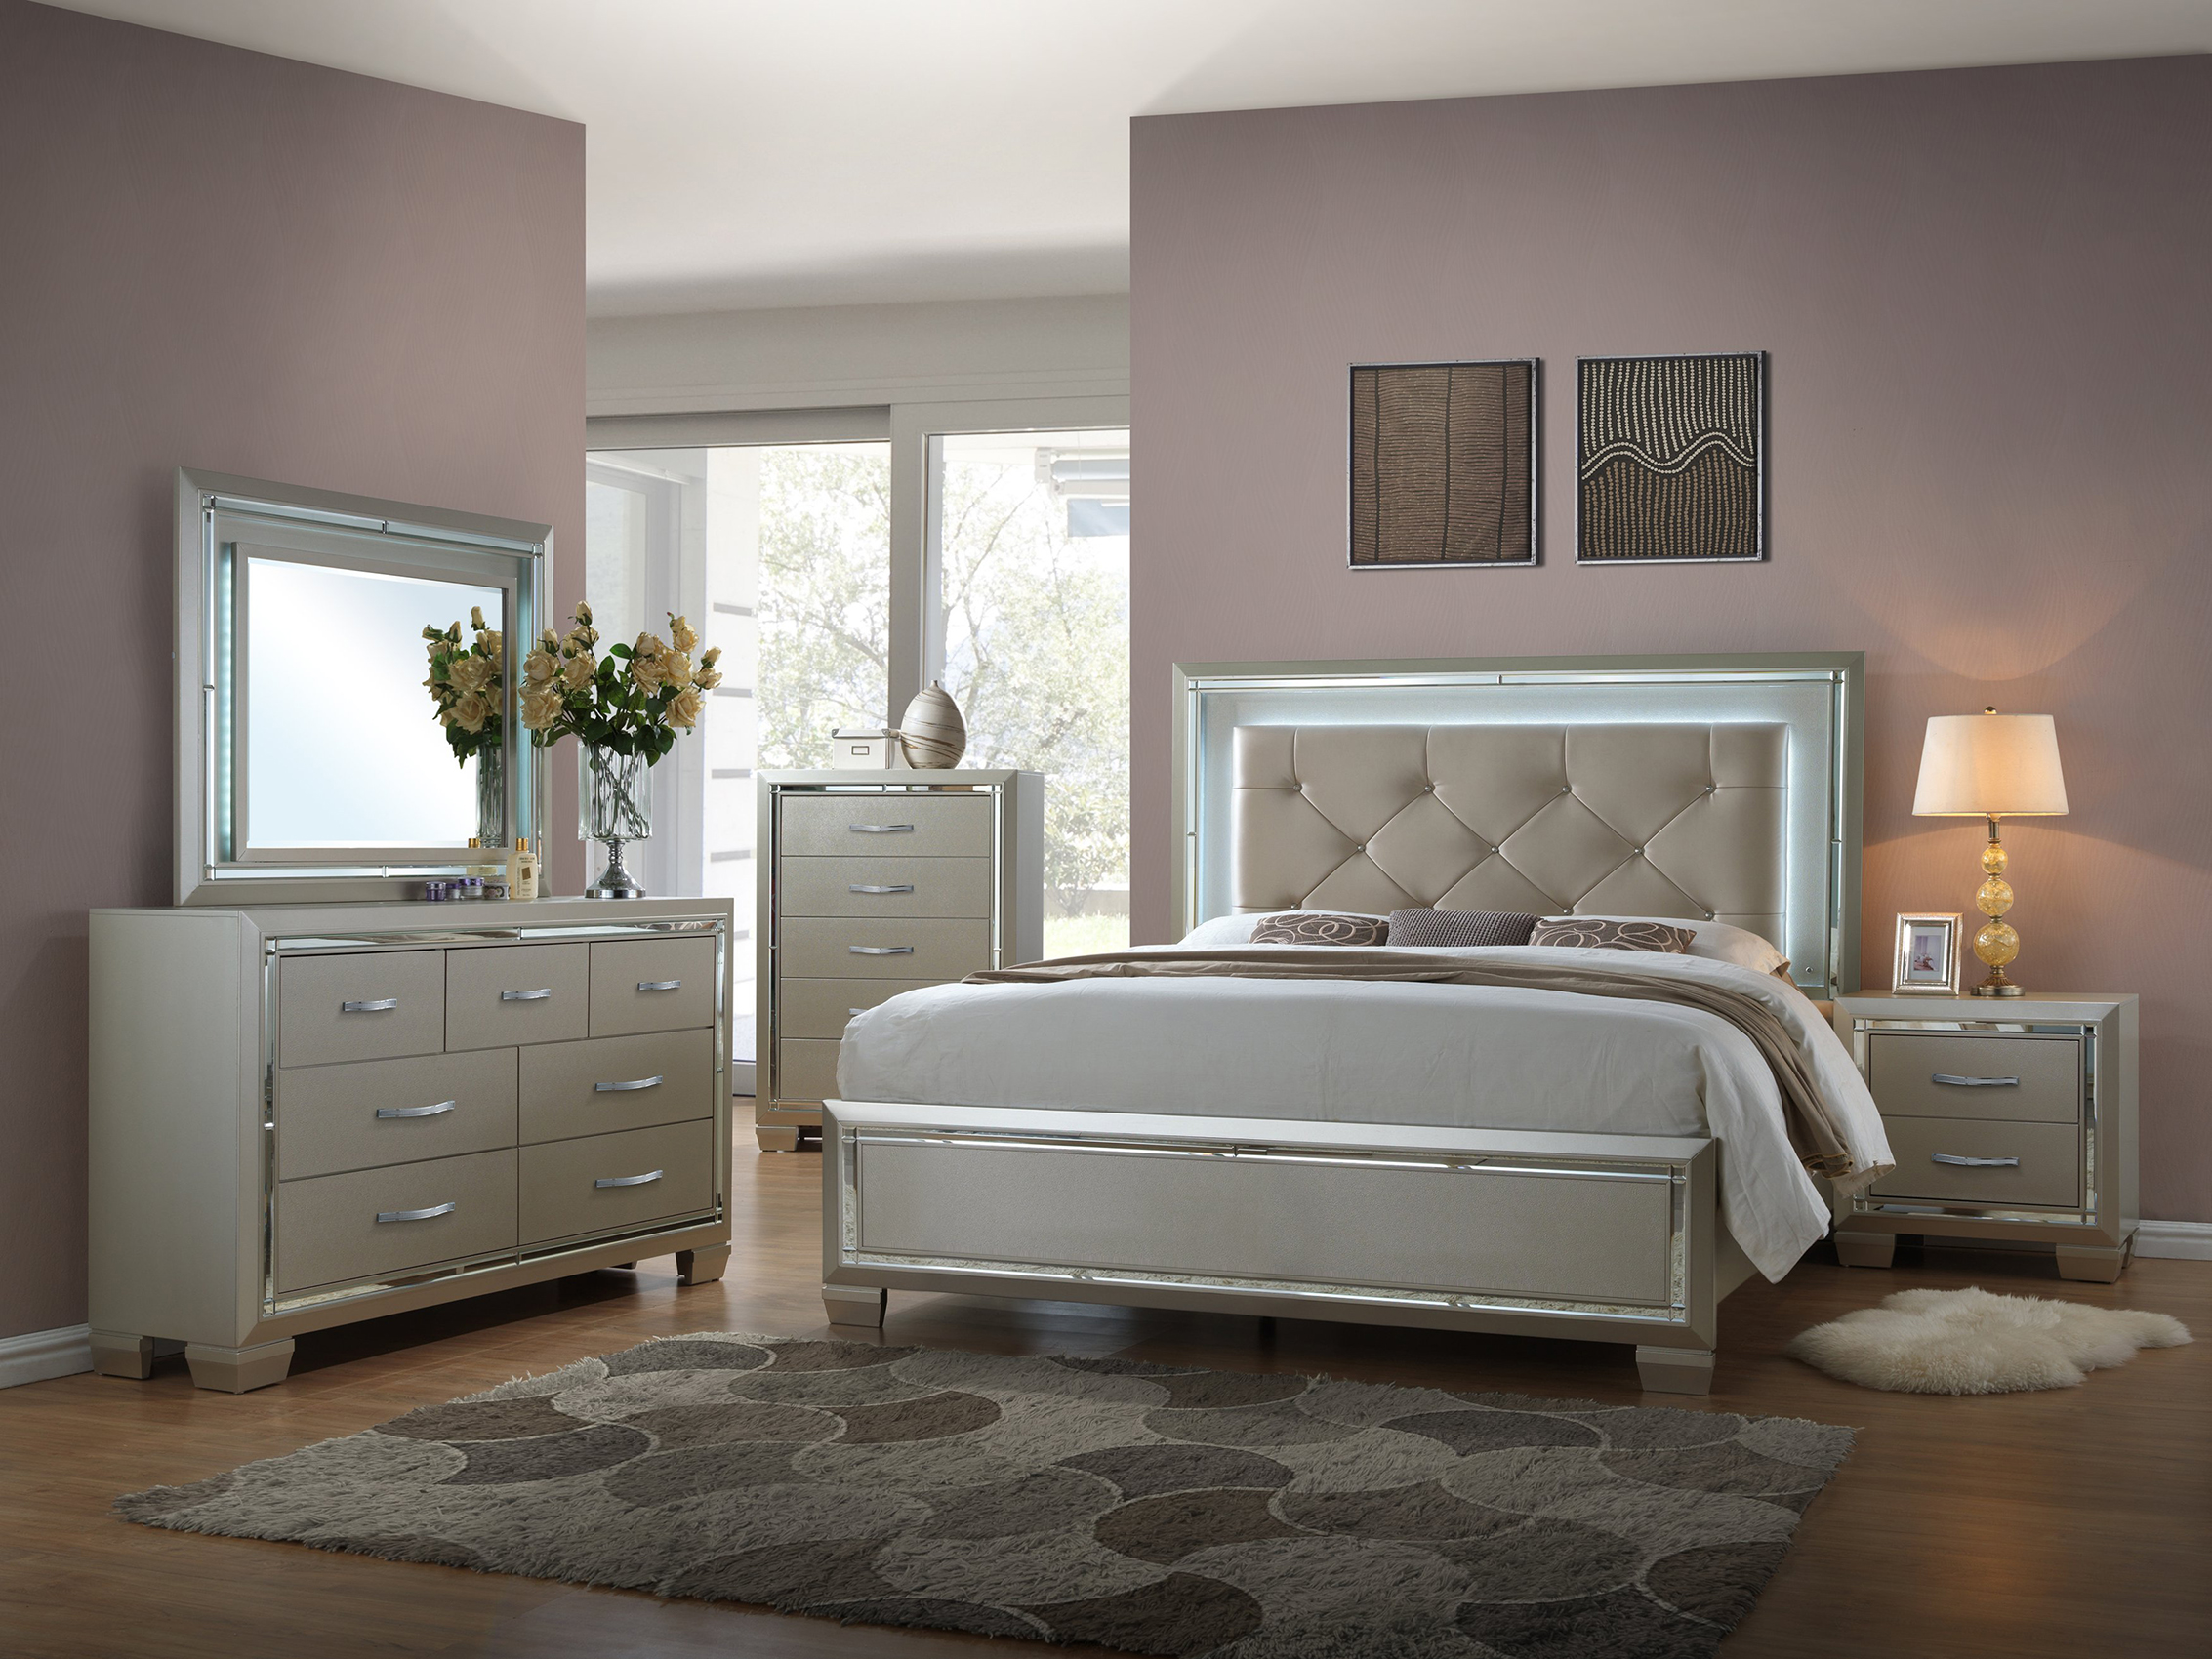 Elegance Full Size Bed Frame With Slide Out Trundle